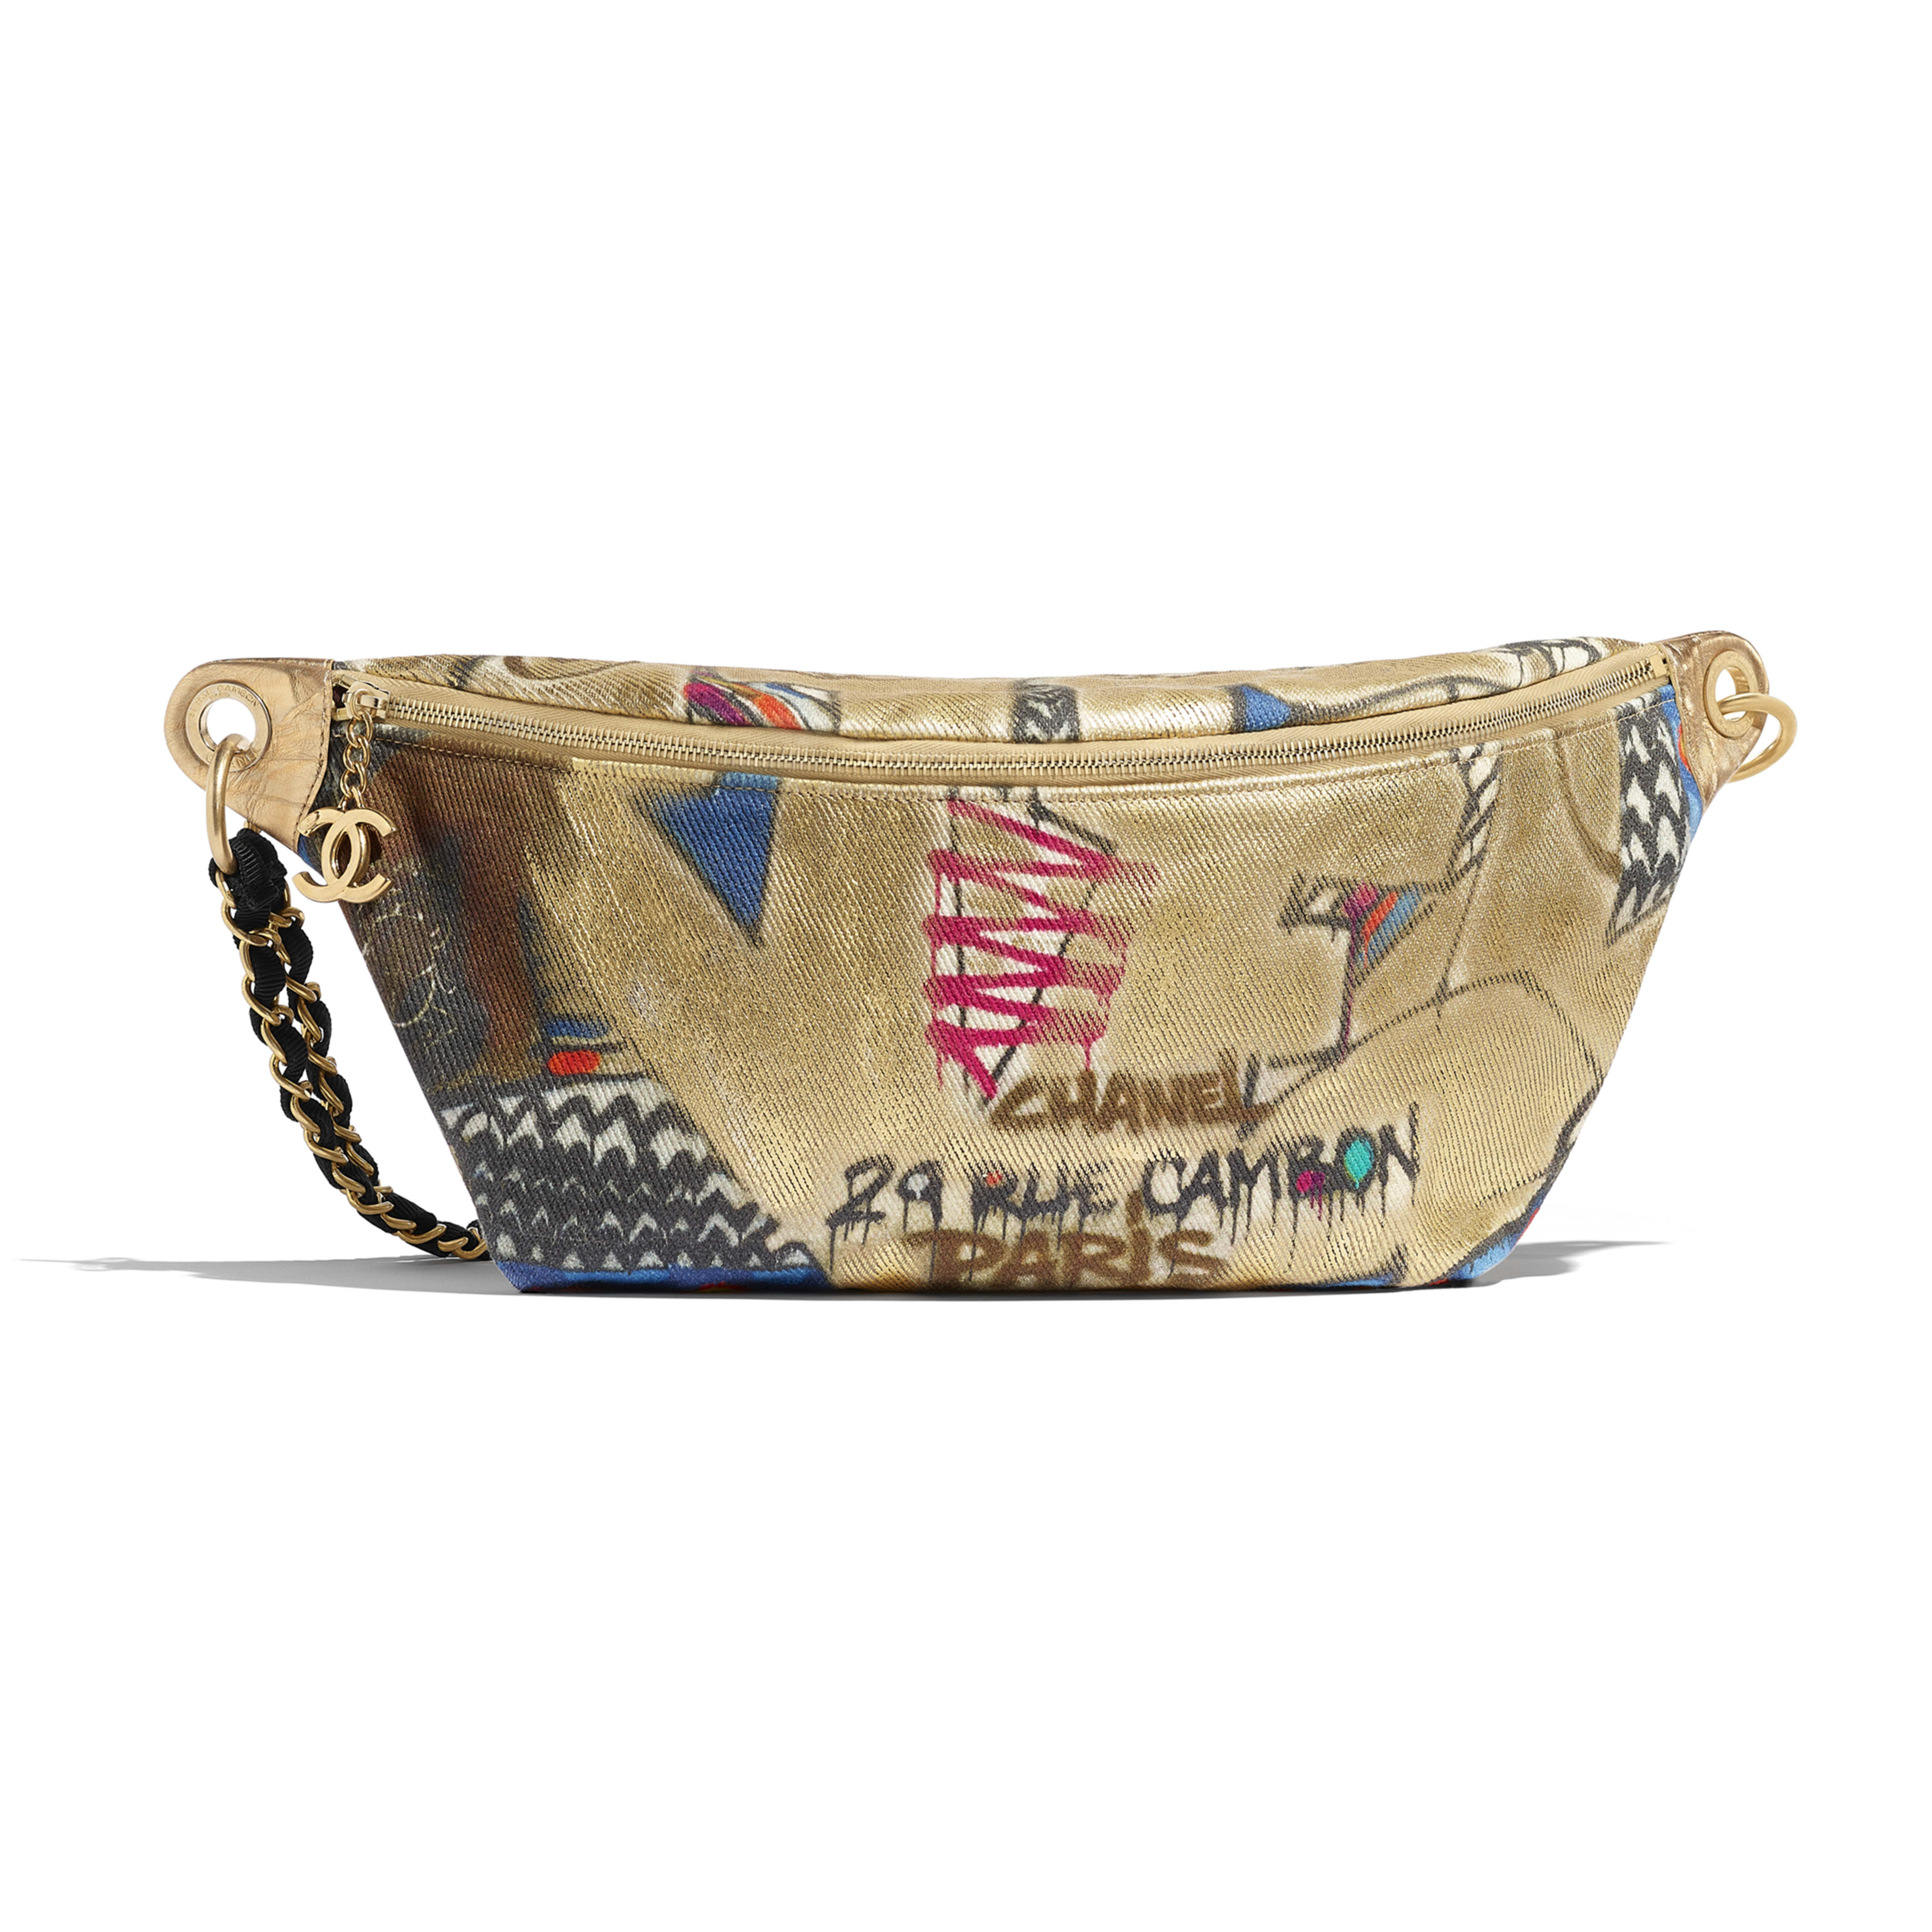 Waist Bag - Multicolor - Calfskin, Cotton & Gold-Tone Metal - Default view - see full sized version